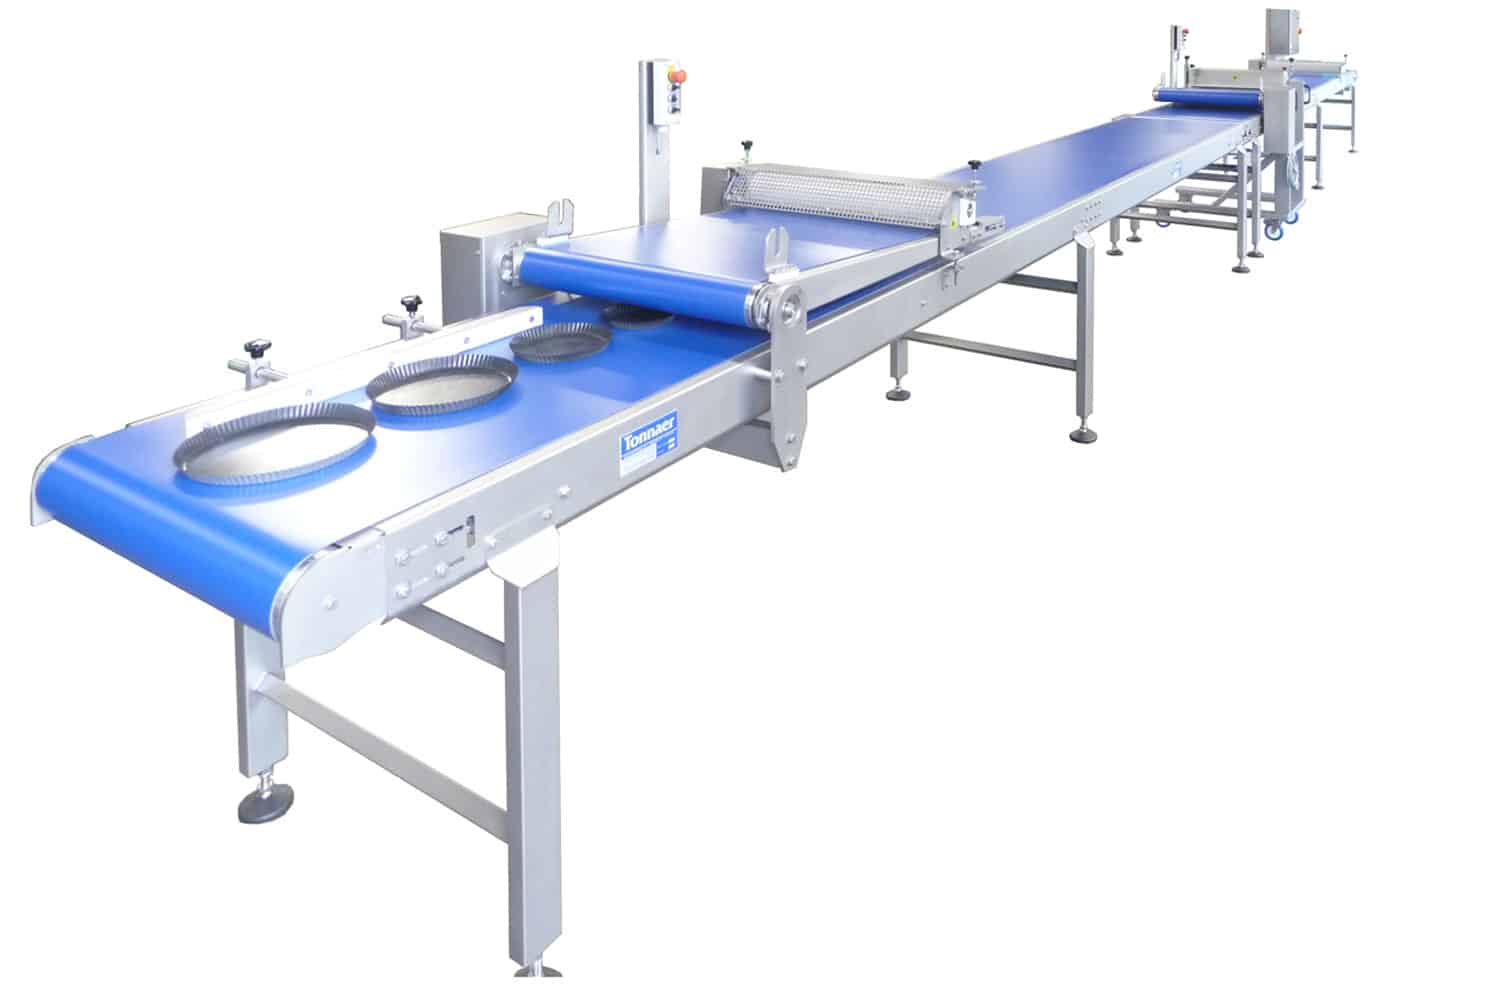 Semi-automatic finishing line 01 Tonnaer Mixing Systems